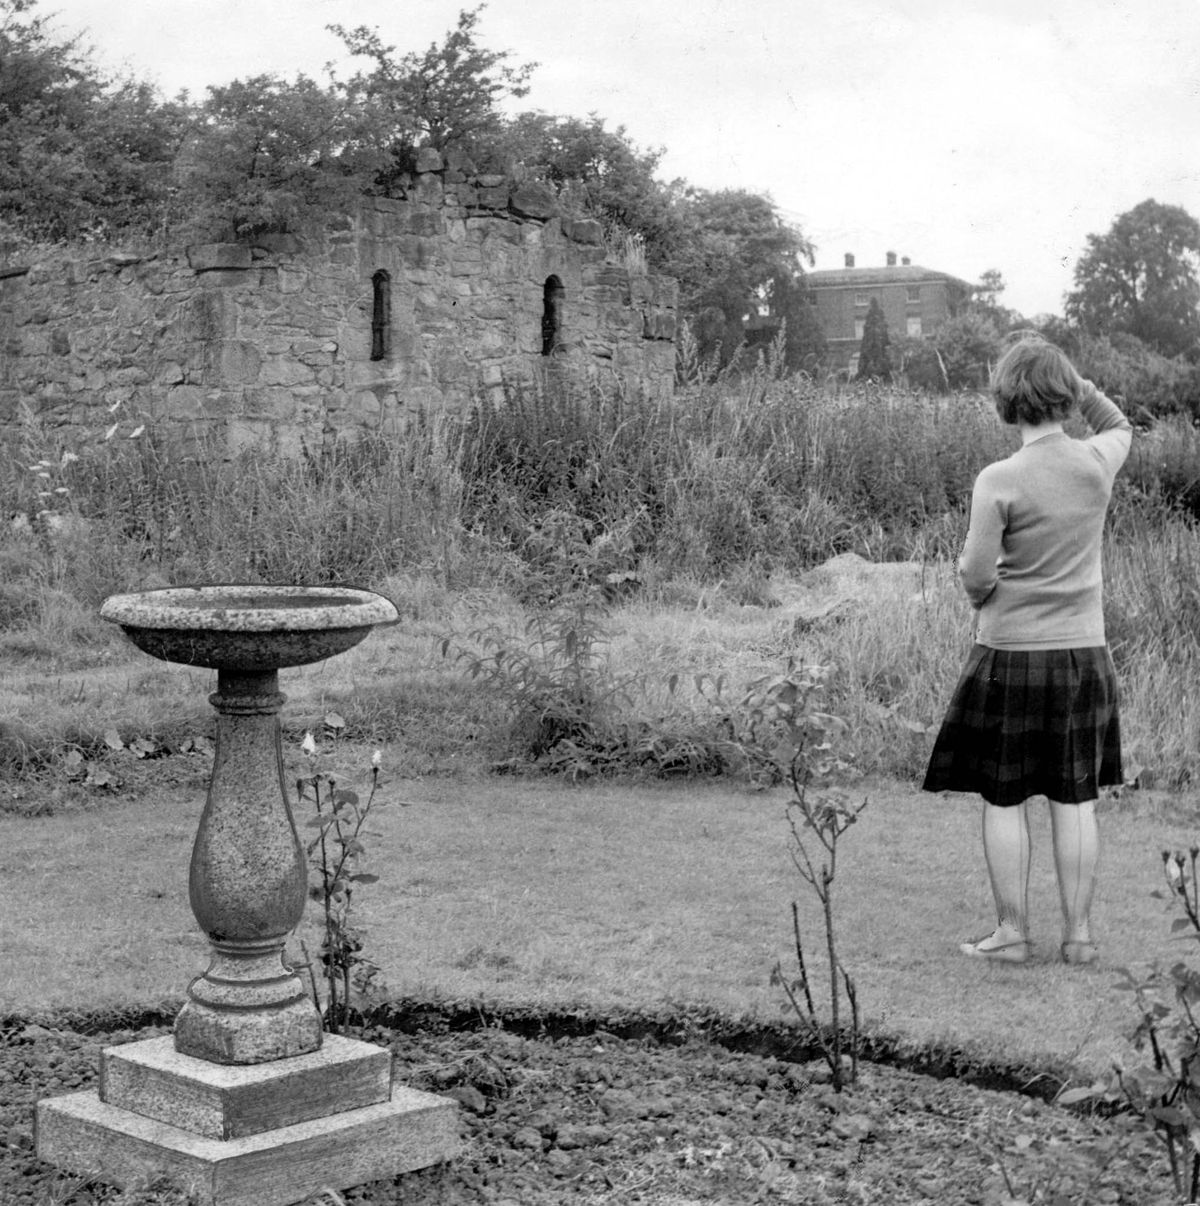 The ruined Norman chapel at Malinslee, pictured on August 15, 1962. According to legend there was a secret passage connecting it to Malinslee Hall in the distance. Jeremy Corbyn's mother was instrumental in saving the chapel from destruction – it was dismantled and rebuilt.